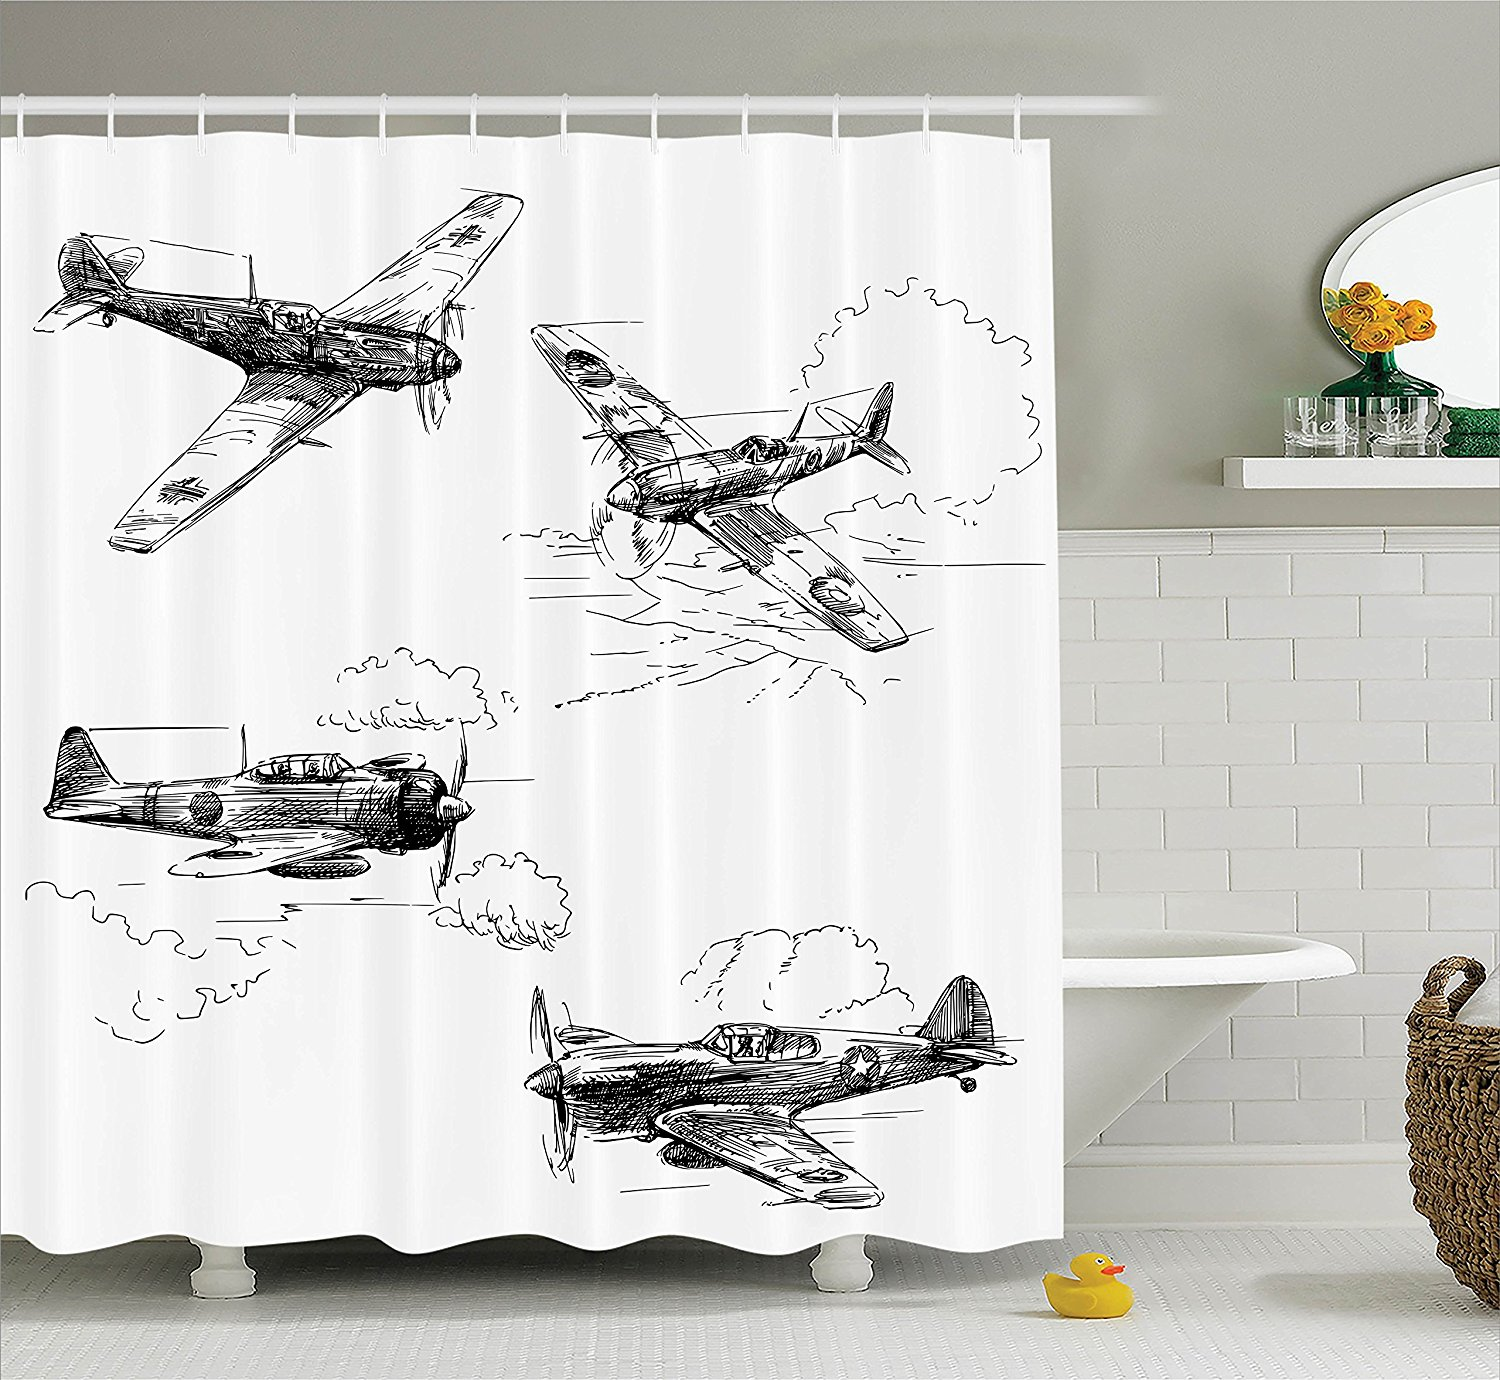 Airplane Decor Collection World War Aircraft Army German Pilot Veteran Aggression Historic Vehicle Pict Polyester Bathroom